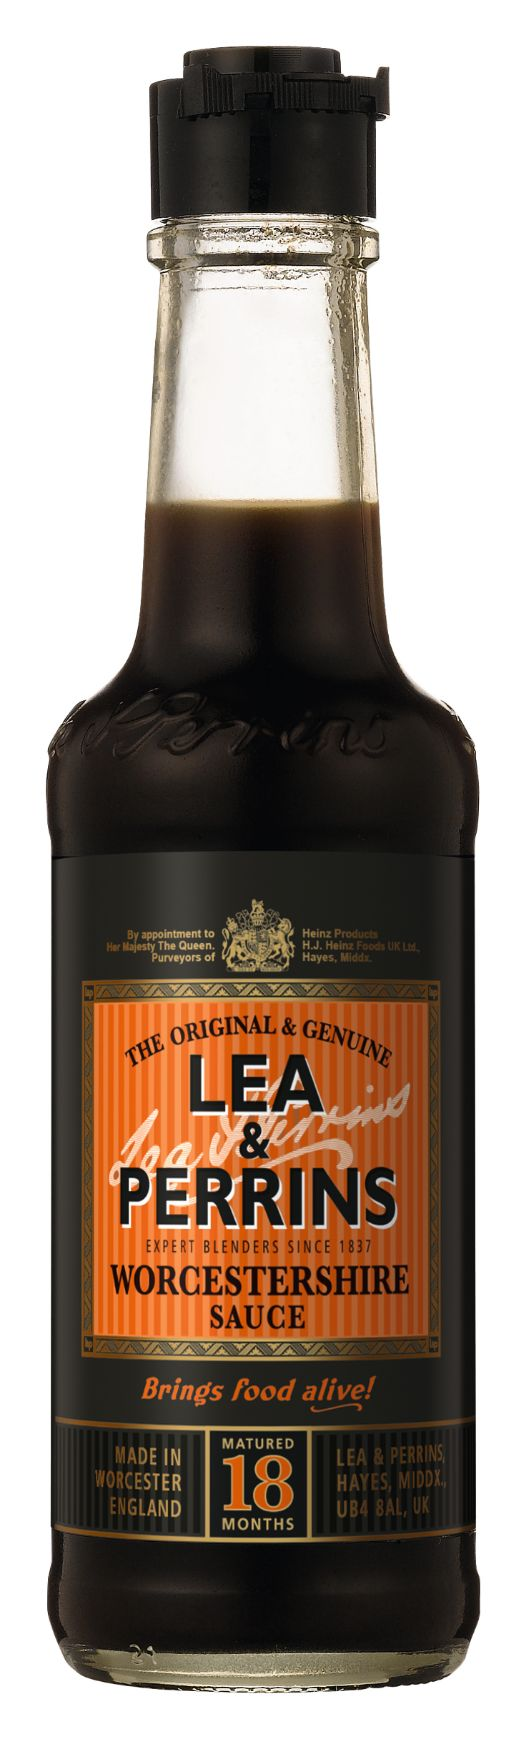 Lea & Perrins Worcestershire Sauce 150ml image